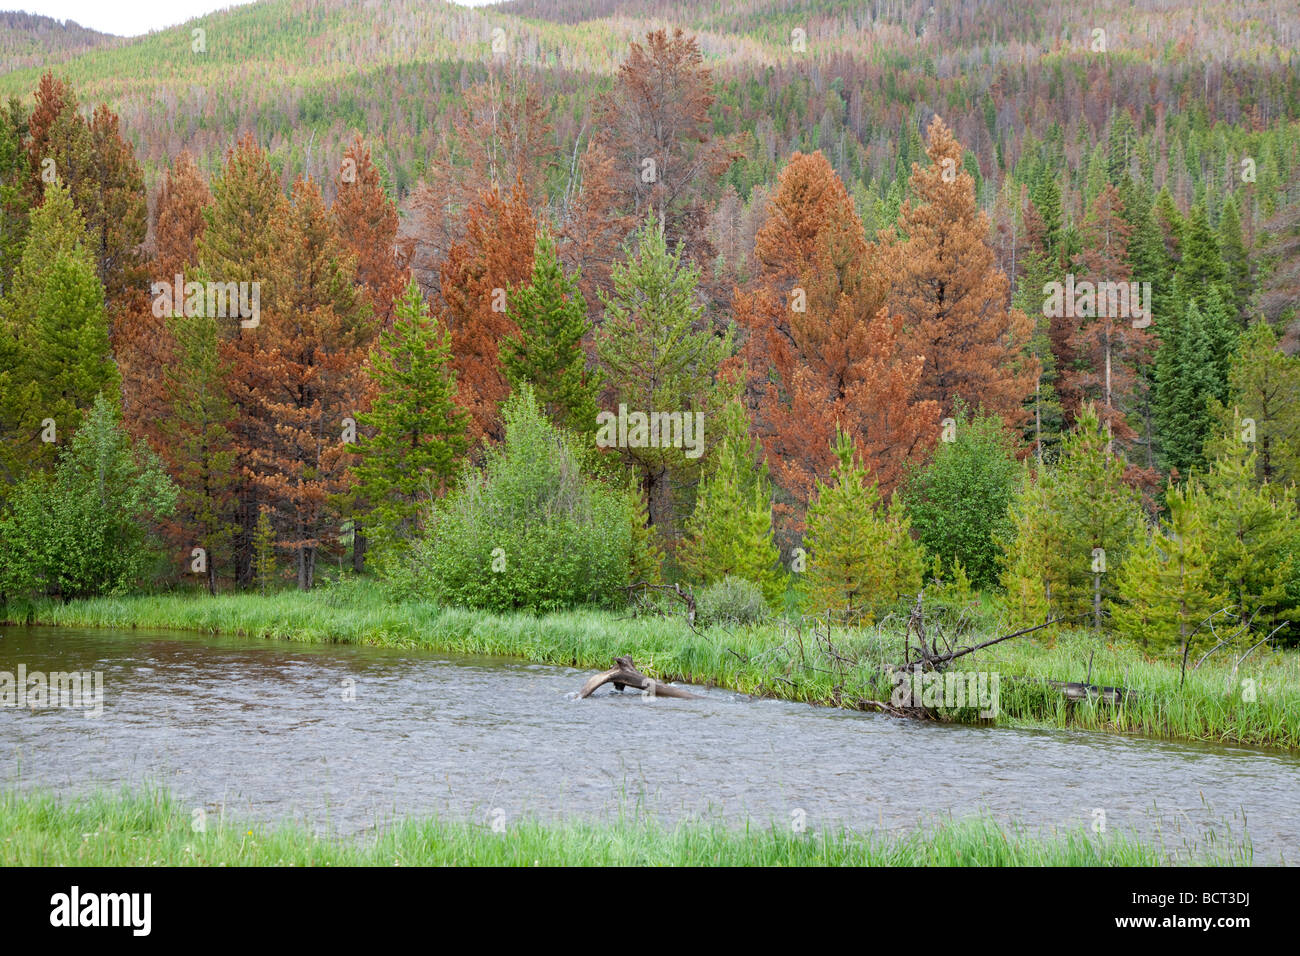 Pine trees killed by mountain pine beetle - Stock Image